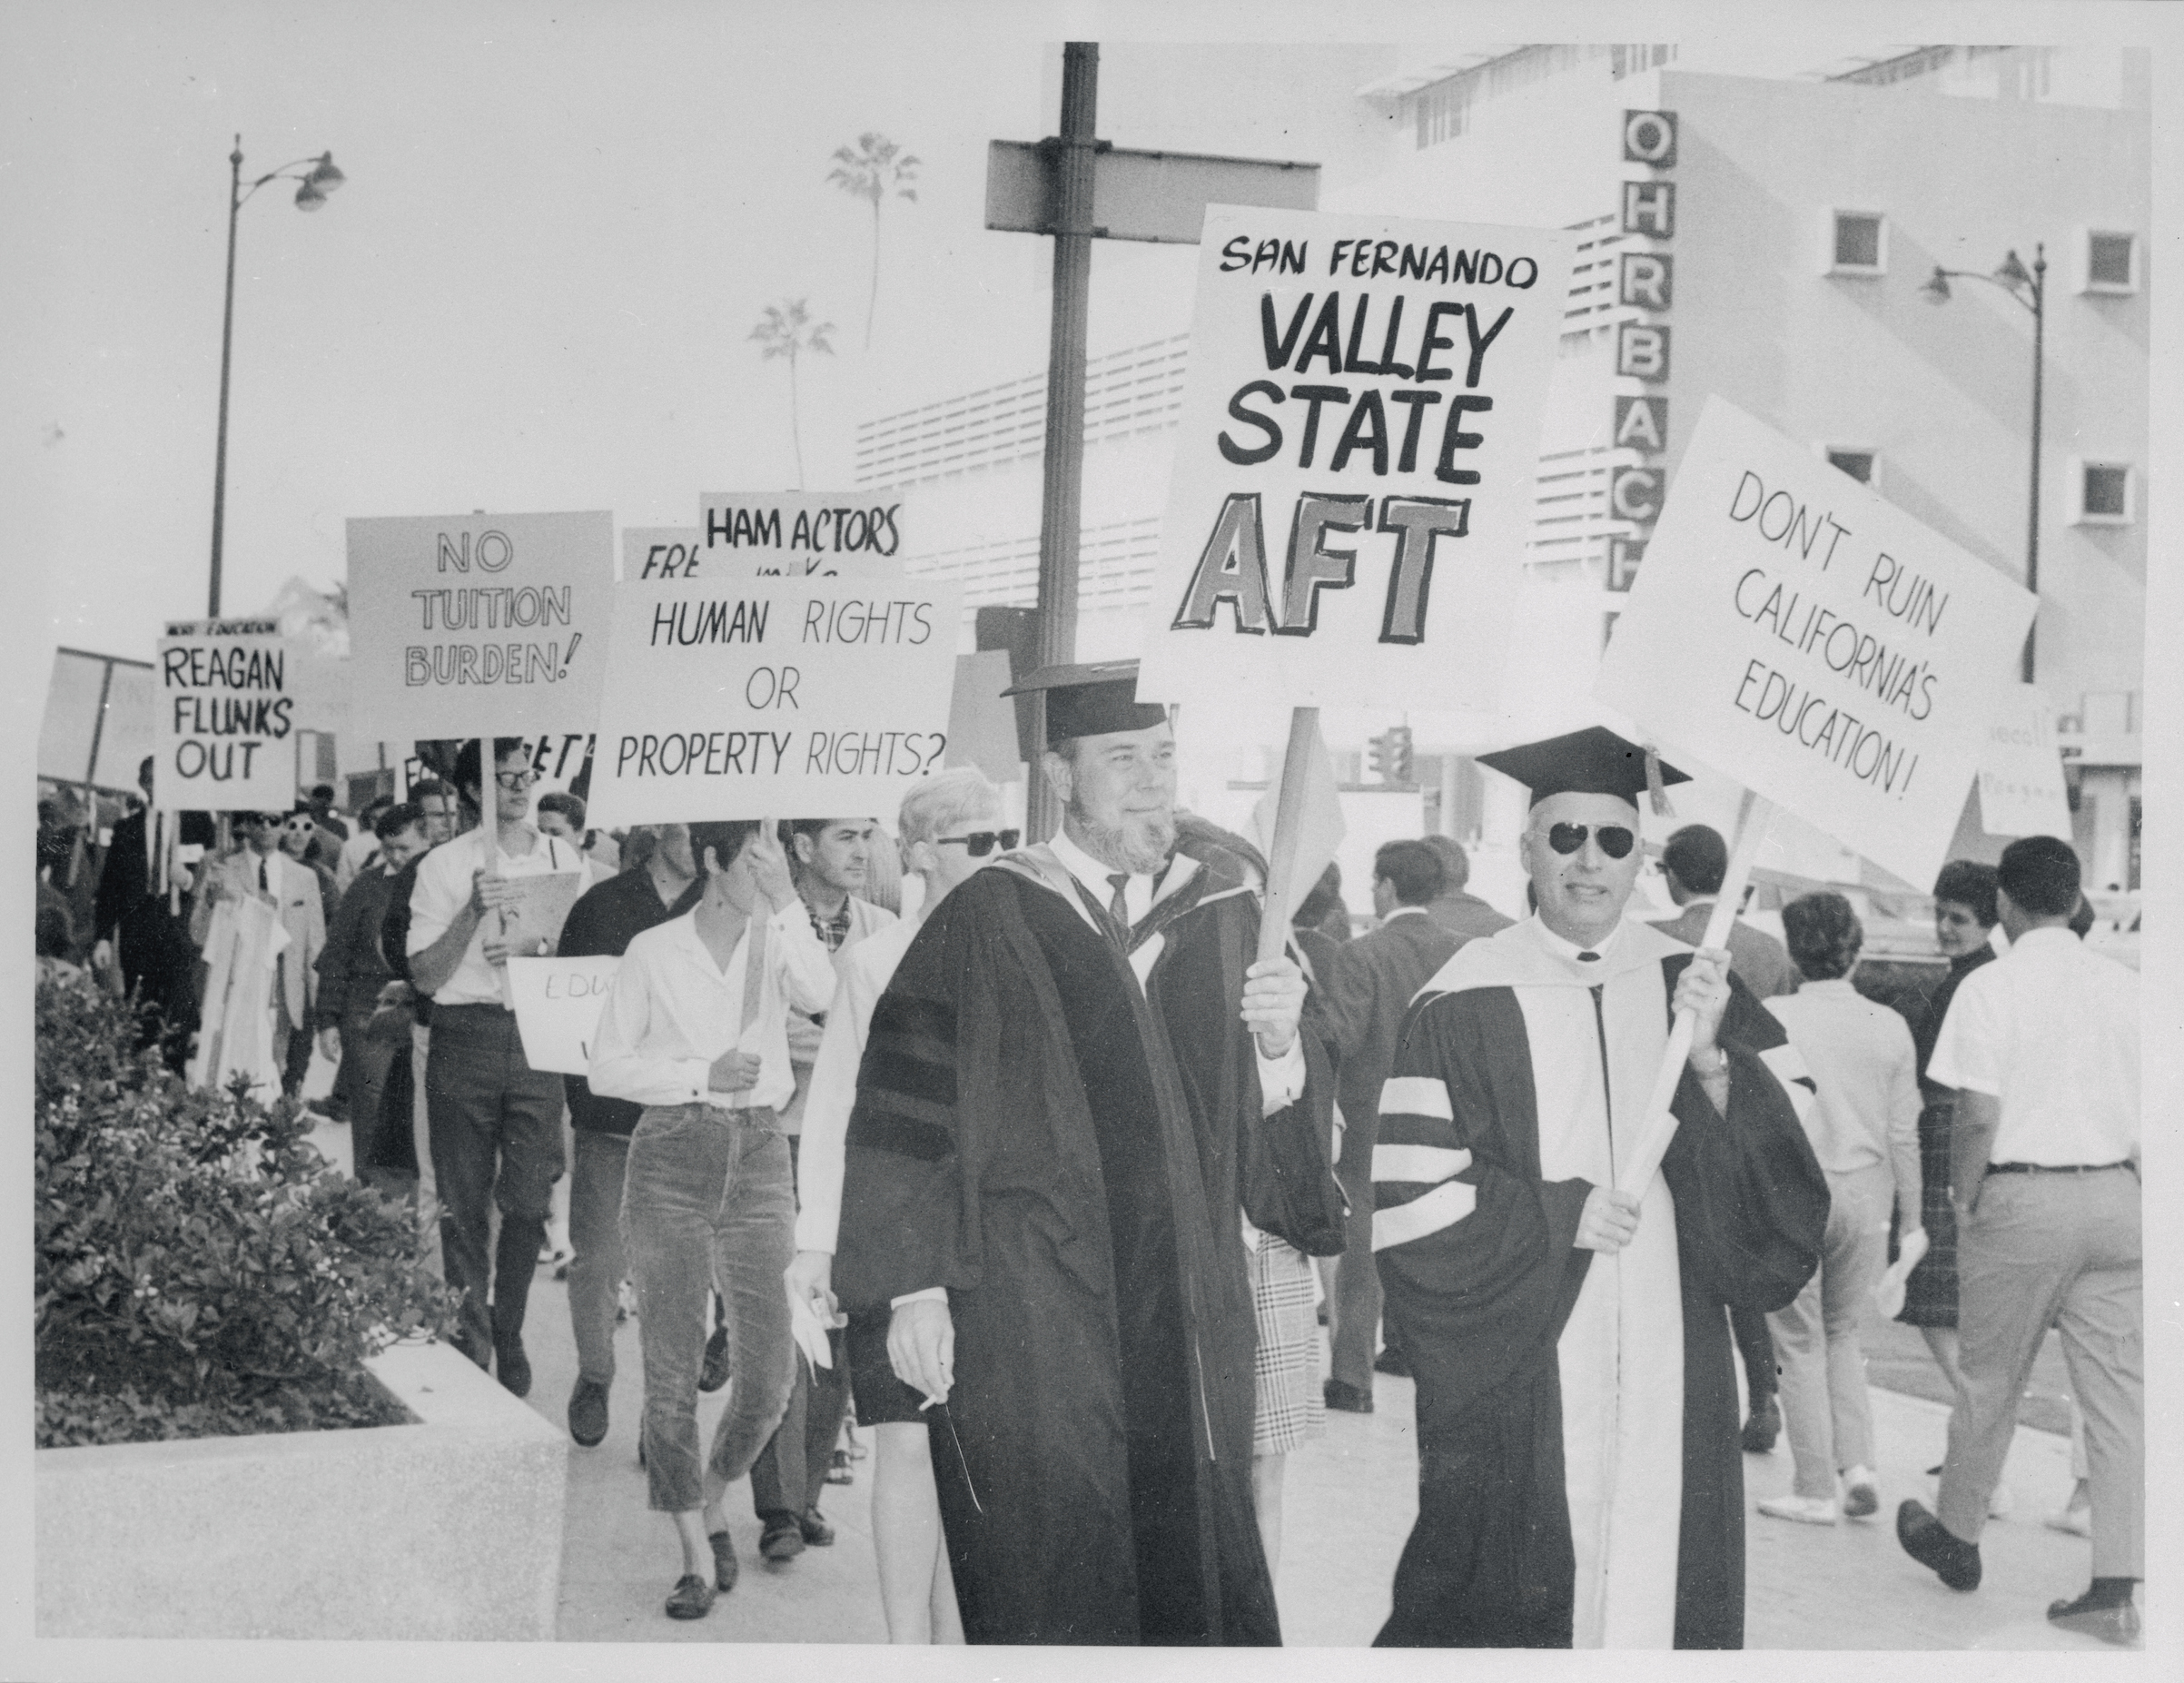 College professors join with students in picketing the office of State Colleges Chancellor Glen Dumke in Los Angeles on Jan. 15, 1967. Some 300 demonstrated against  proposed budget cuts and increased tuition fees.